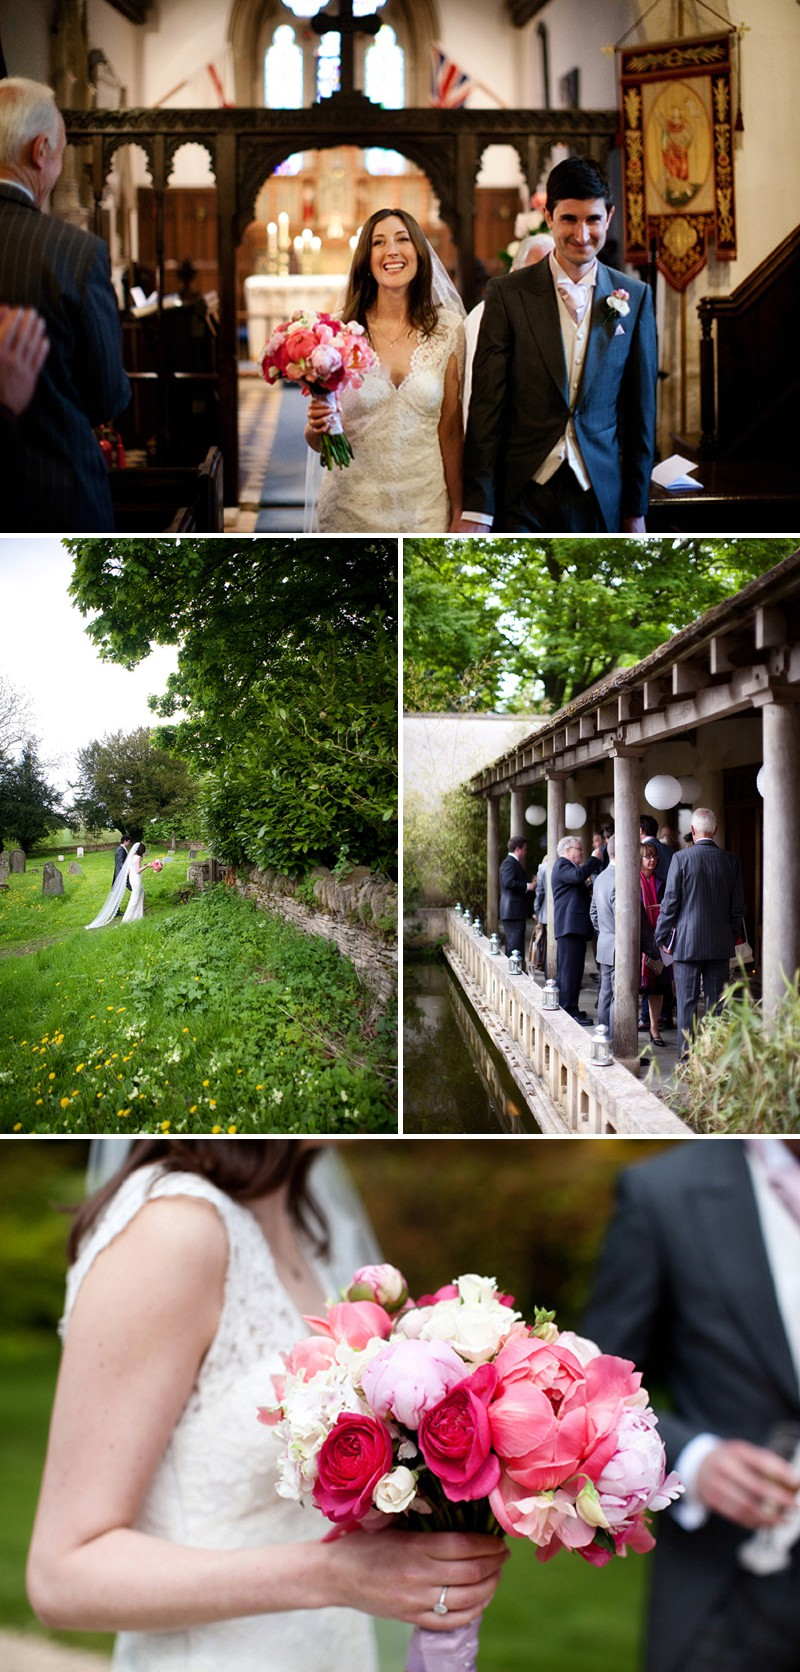 Elegant English Wedding At The Matara Centre In The Cotswolds With A Jenny Lessin Dress And A Pink Bouquet By Lillian & Leonard Wedding Photography._0006